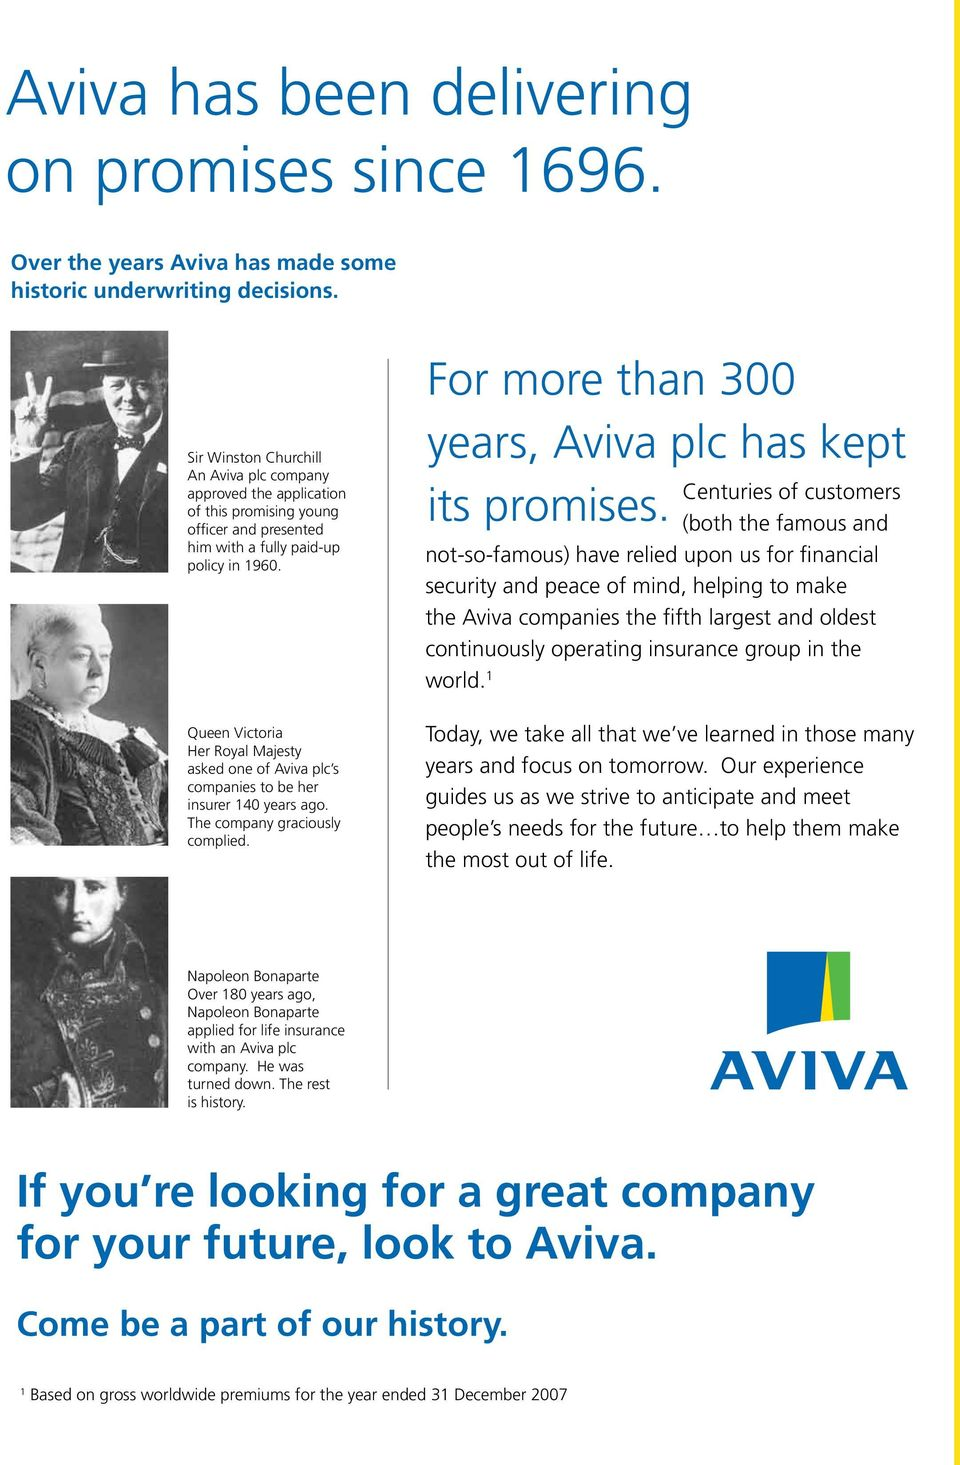 Queen Victoria Her Royal Majesty asked one of Aviva plc s companies to be her insurer 40 years ago. The company graciously complied. For more than 300 years, Aviva plc has kept its promises.